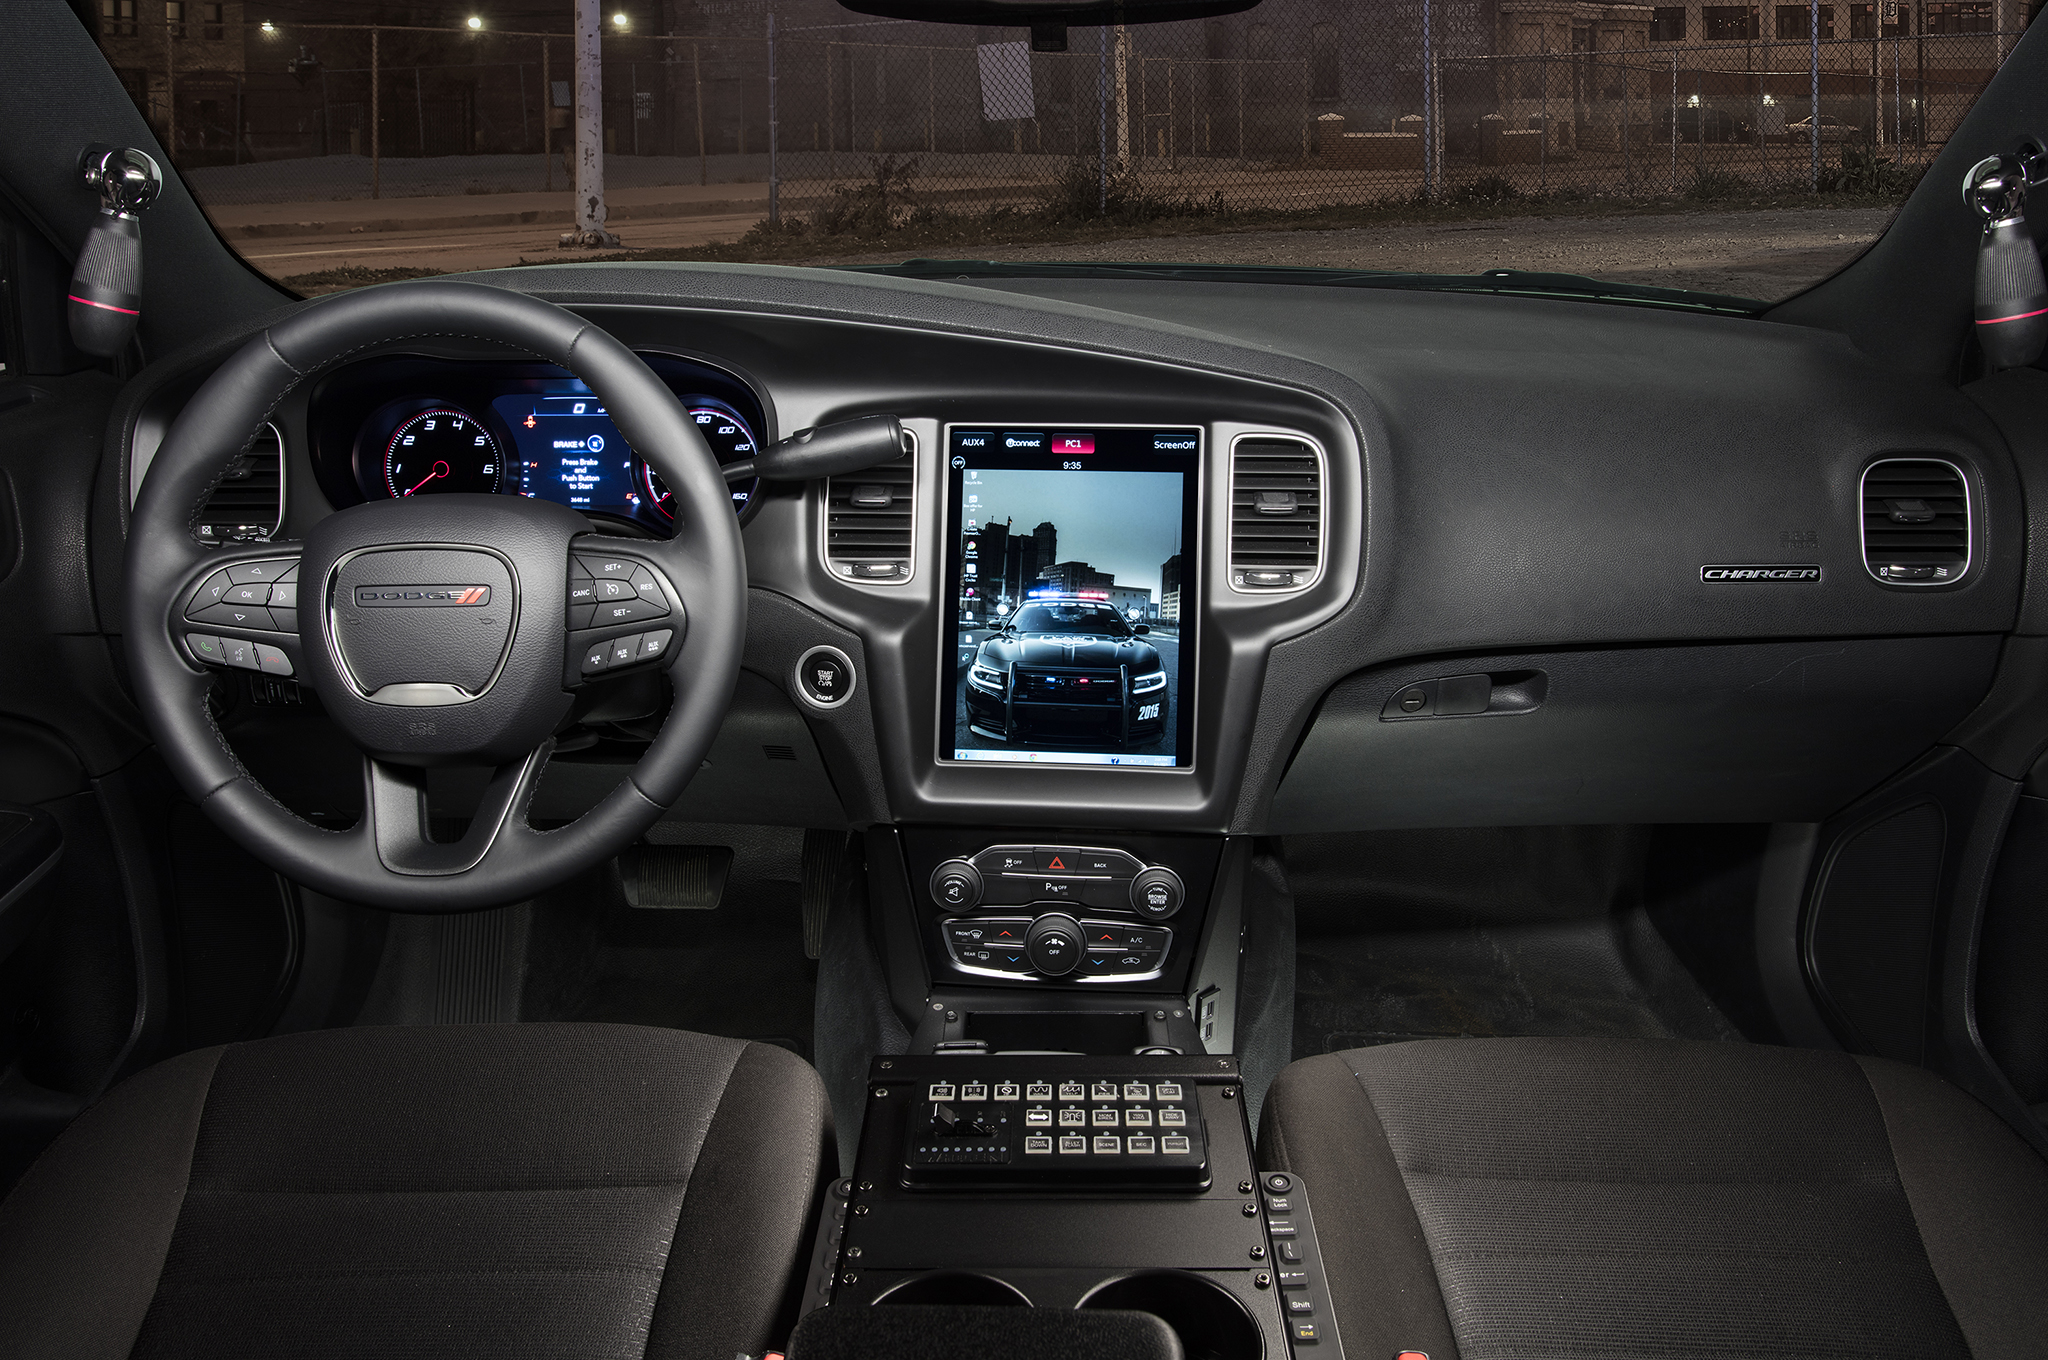 2016 Dodge Charger Pursuit Adds 12 1-inch Touchscreen Computer